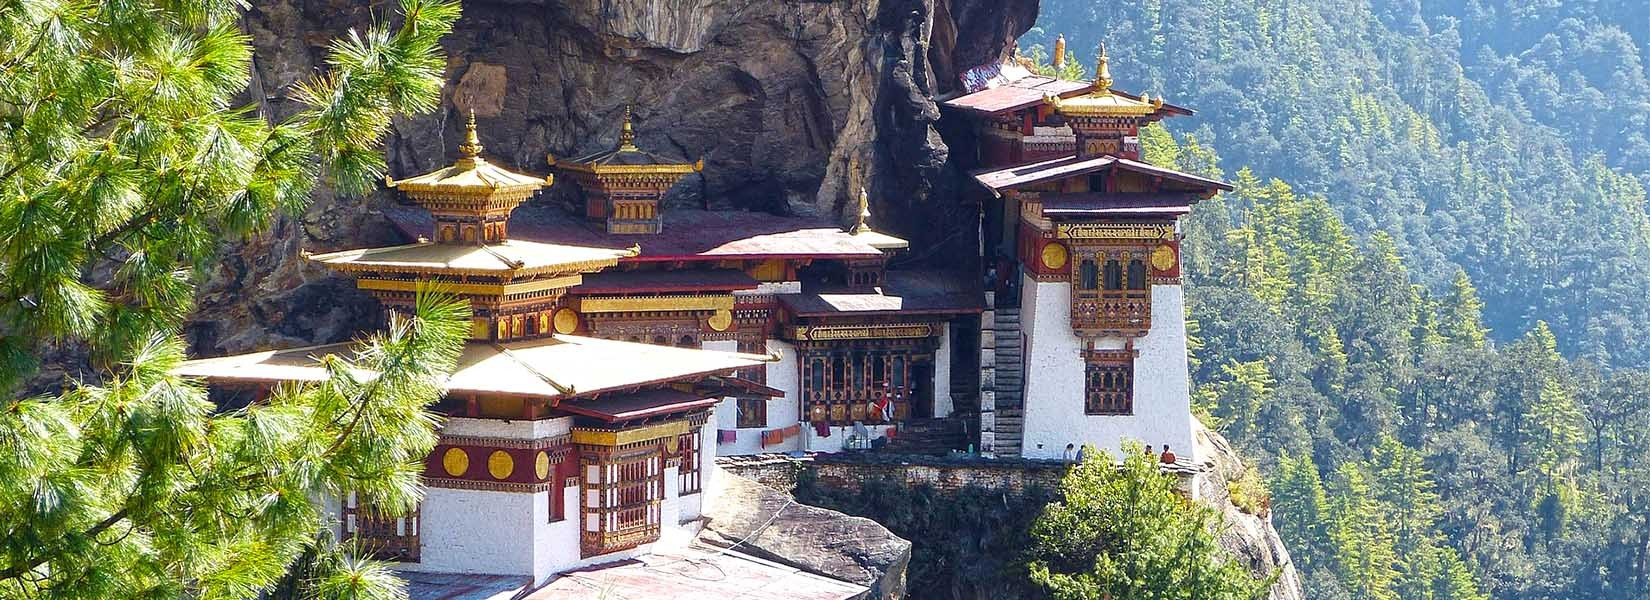 bhutan tour packages from nepal